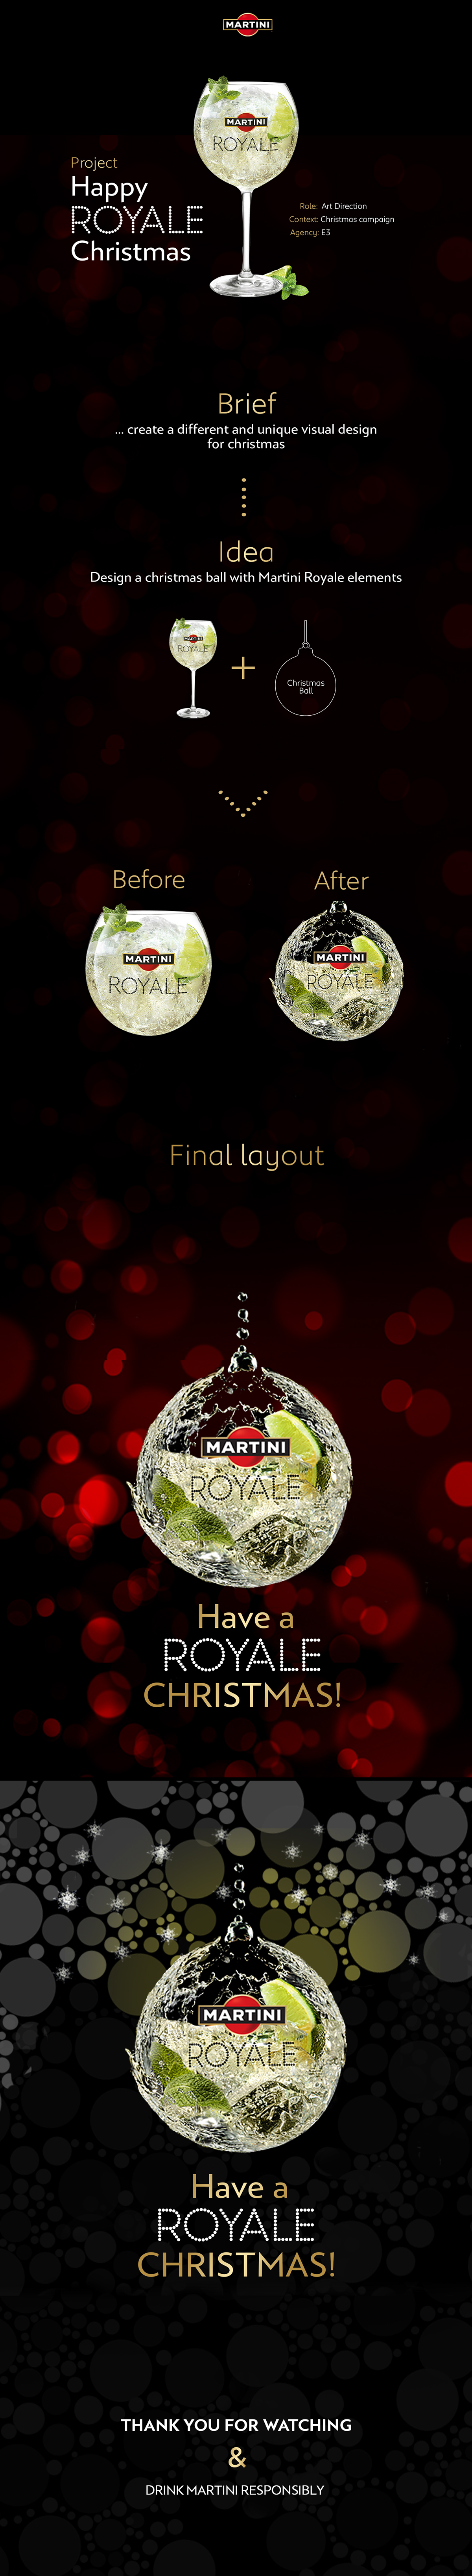 Martini royale art  direction Photo Retouching water effects photoshop compositing lights Christmas design